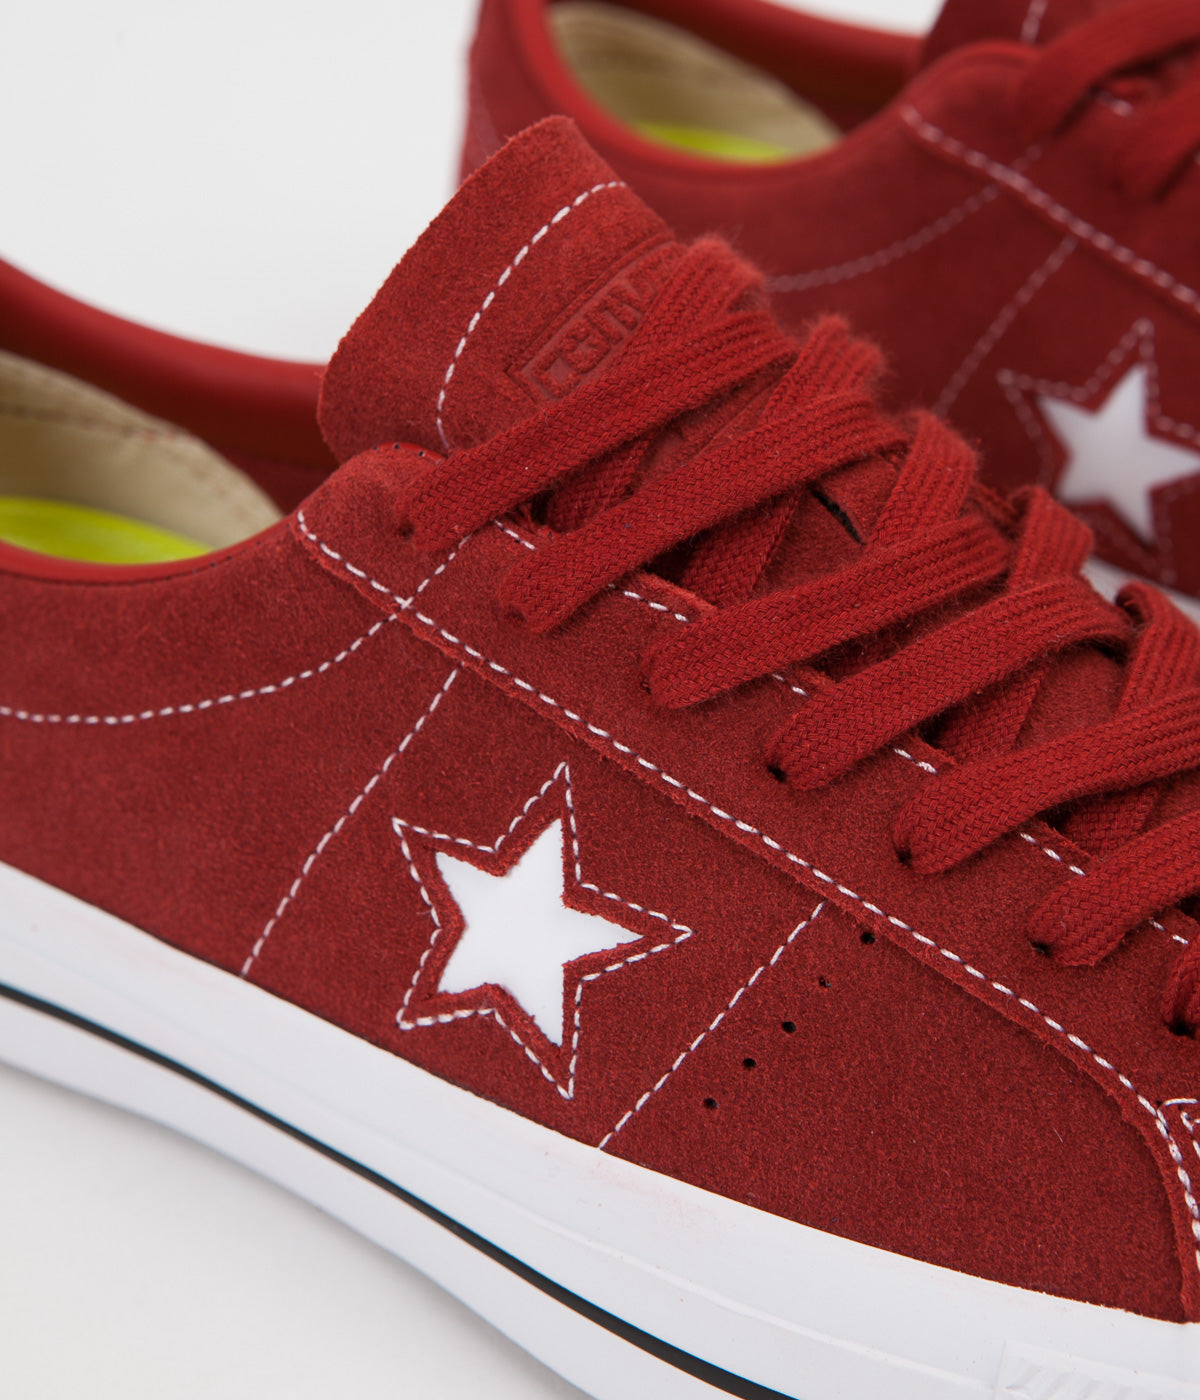 Converse One Star Pro Ox Shoes - Terra Red / Terra Red